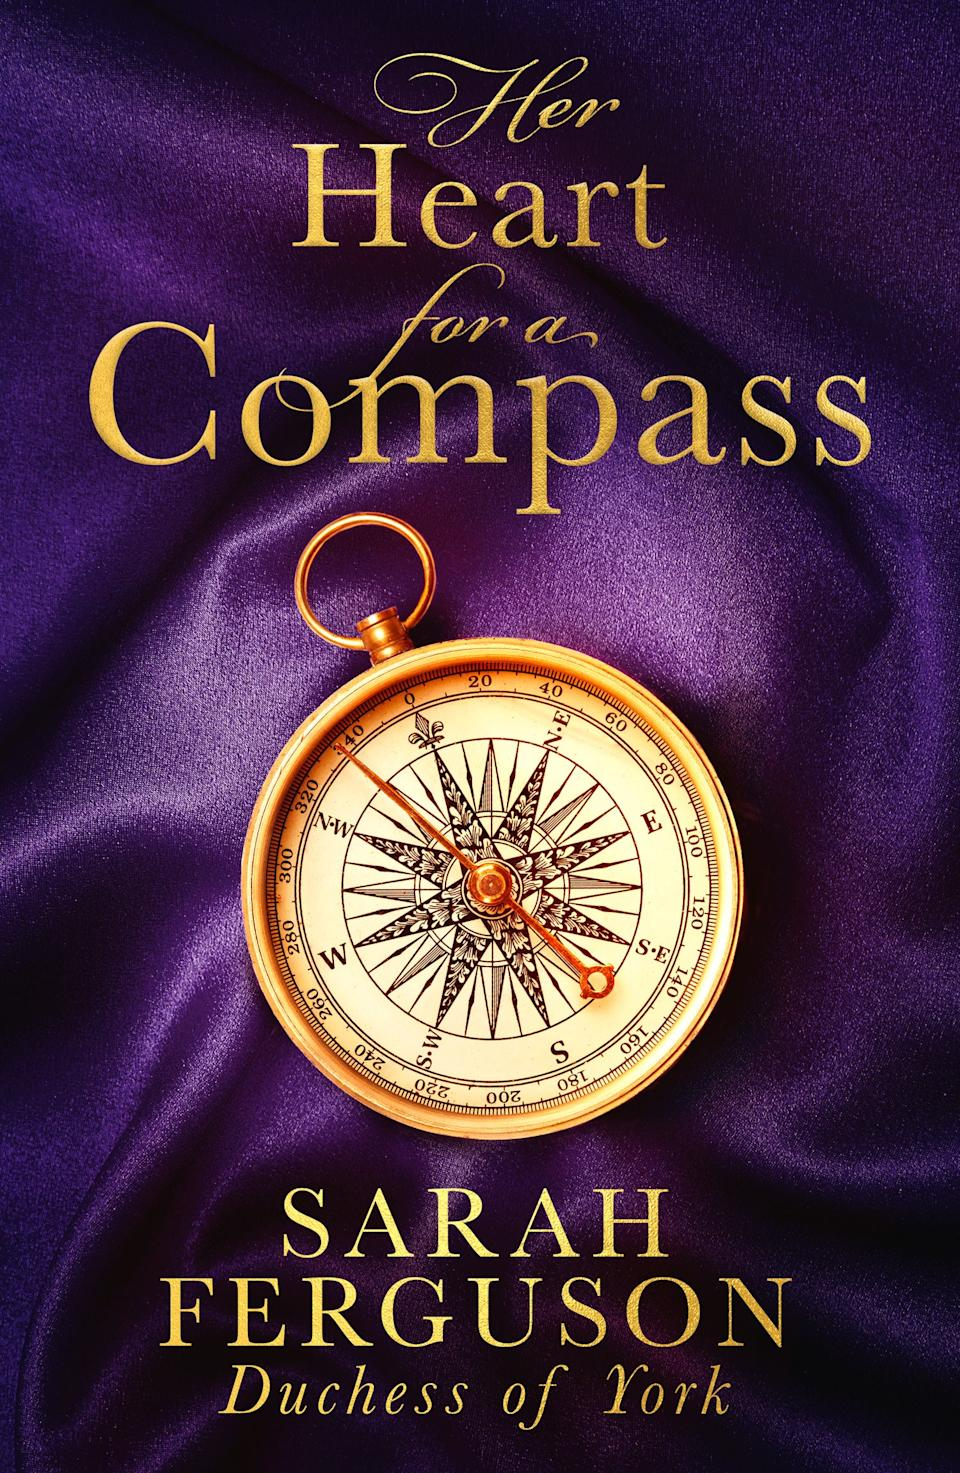 A Heart for a Compass is based partly on the life of a distant relativeHandout